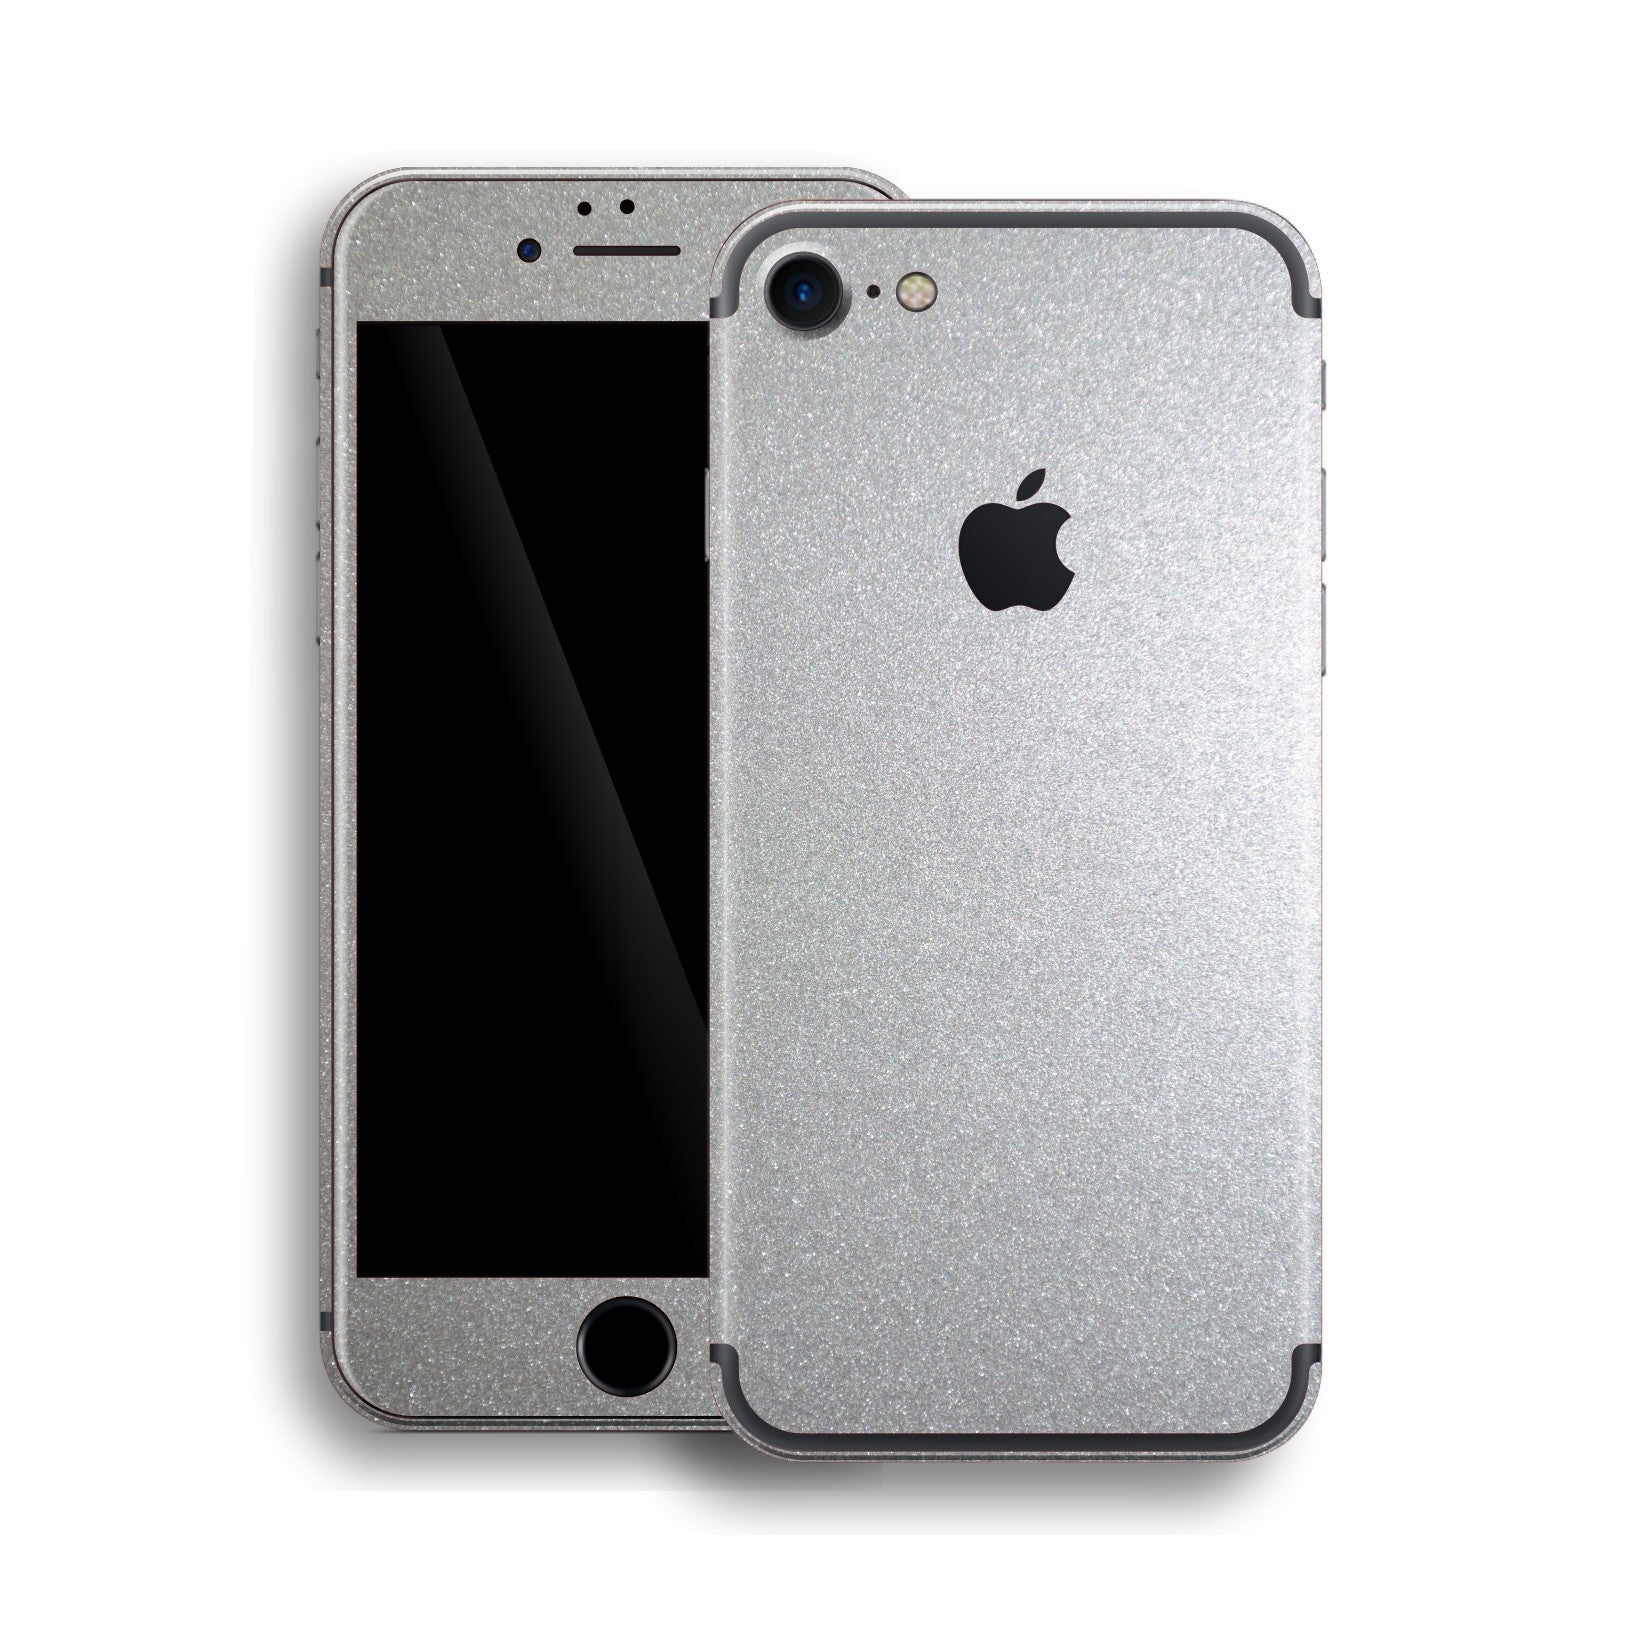 iPhone 7 Silver Metallic Glossy Skin, Wrap, Decal, Protector, Cover by EasySkinz | EasySkinz.com